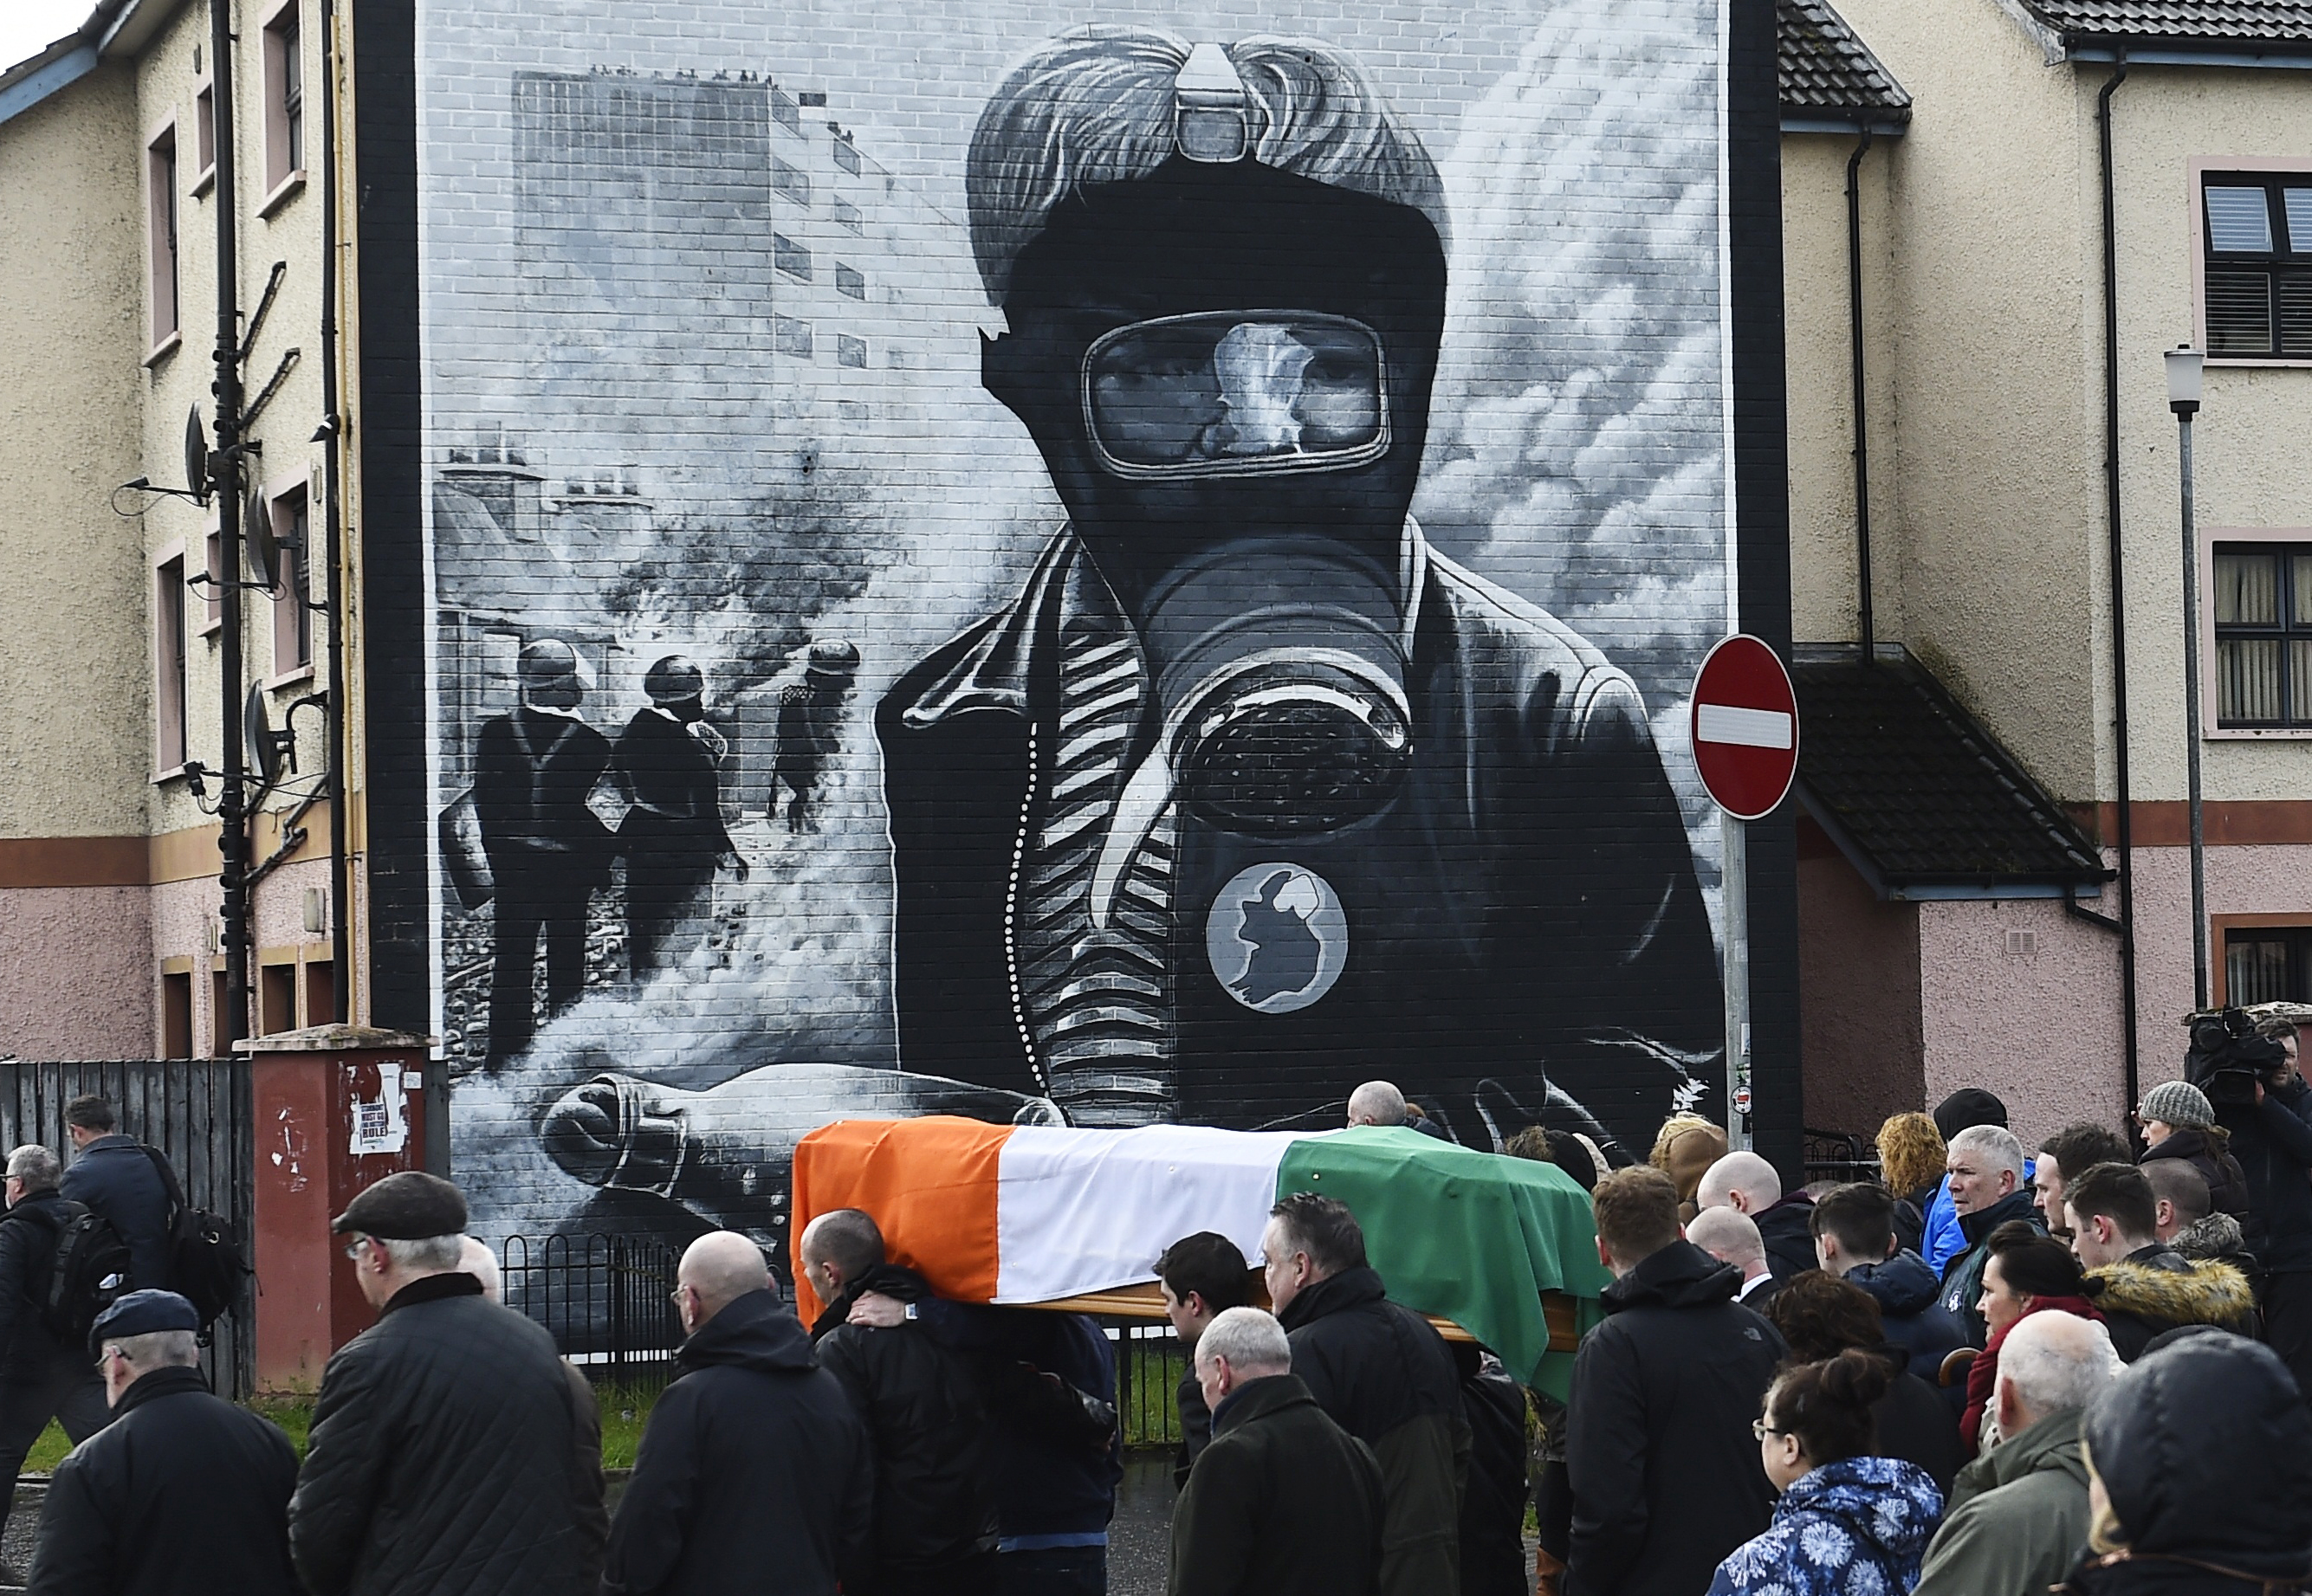 LONDONDERRY 2017-03-21 Pall bearers carry the coffin of Martin McGuinness through the streets of Londonderry, Northern Ireland, March 21, 2017. REUTERS/Clodagh Kilcoyne TPX IMAGES OF THE DAY Photo: / REUTERS / TT / kod 72000